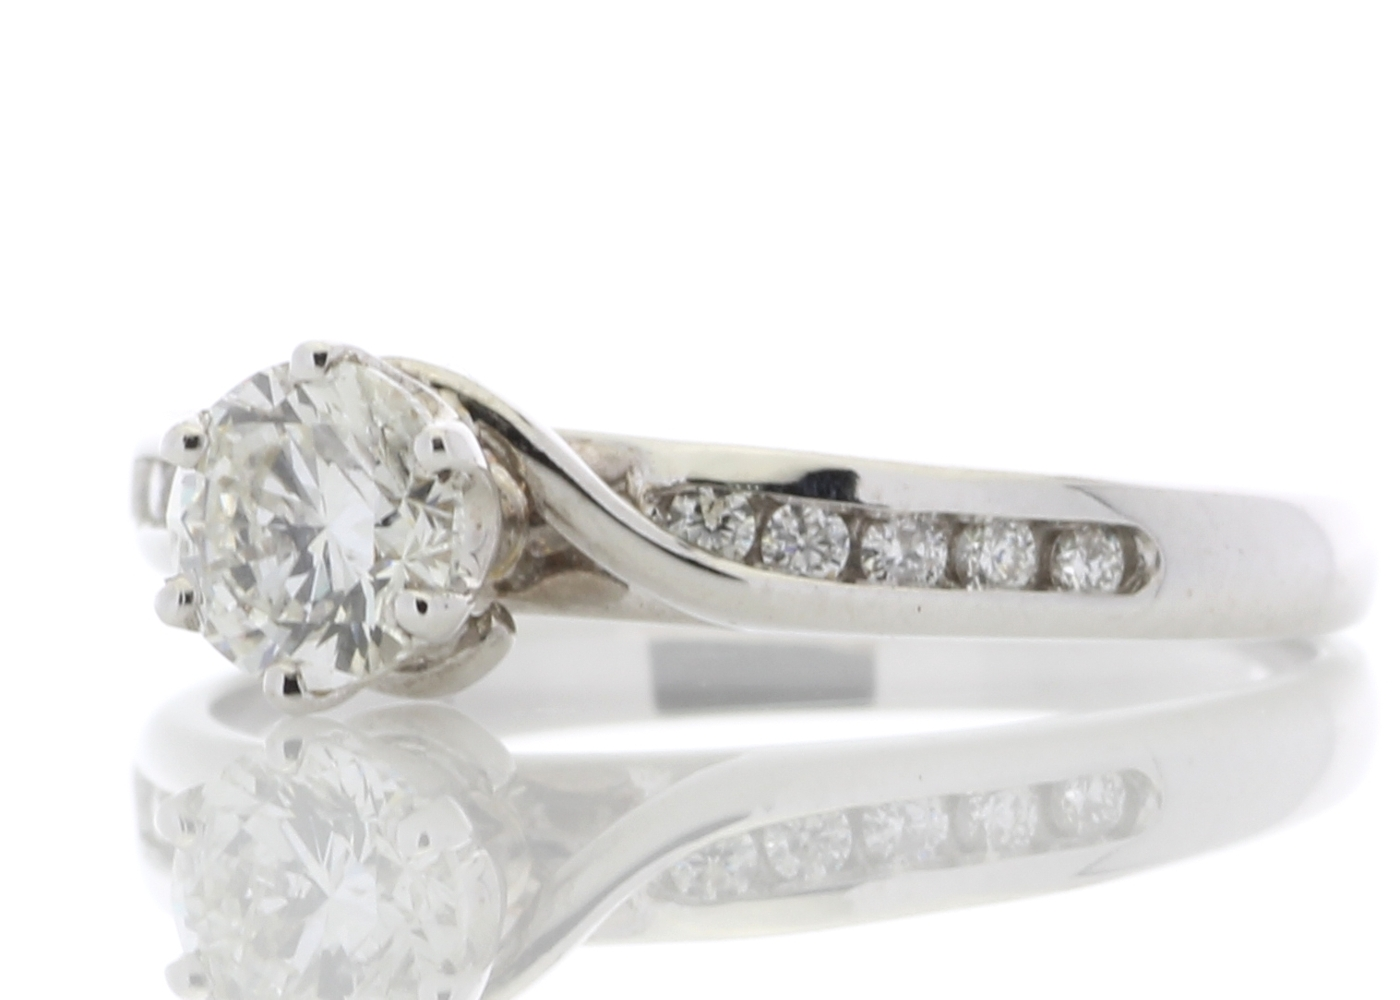 18ct White Gold Diamond Ring With Stone Set shoulders 0.61 Carats - Image 2 of 4